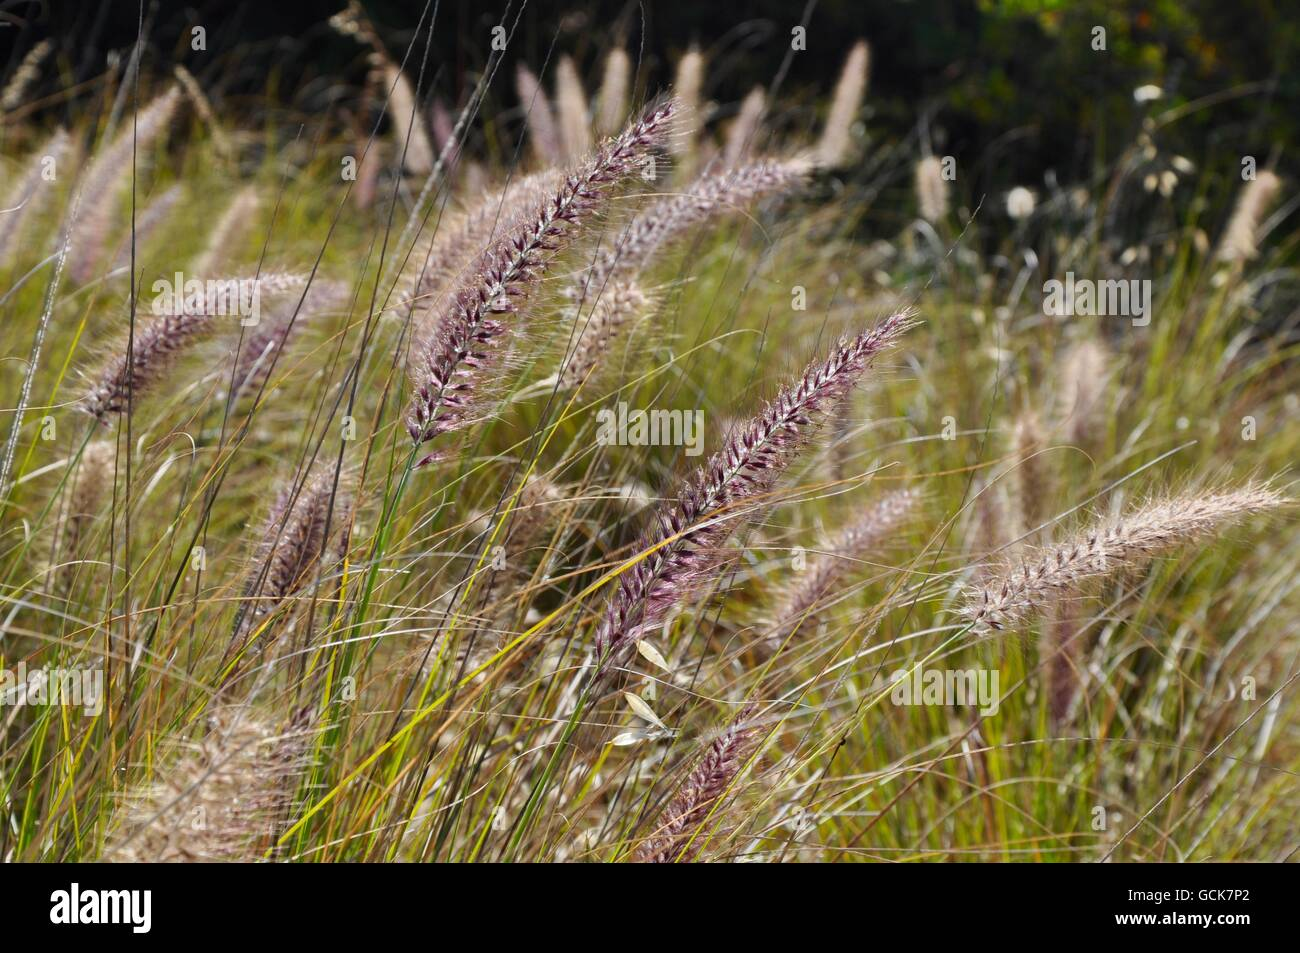 Meadow of ornamental purple fountain grass with large seed heads in meadow of ornamental purple fountain grass with large seed heads in uncultivated western australia nature workwithnaturefo